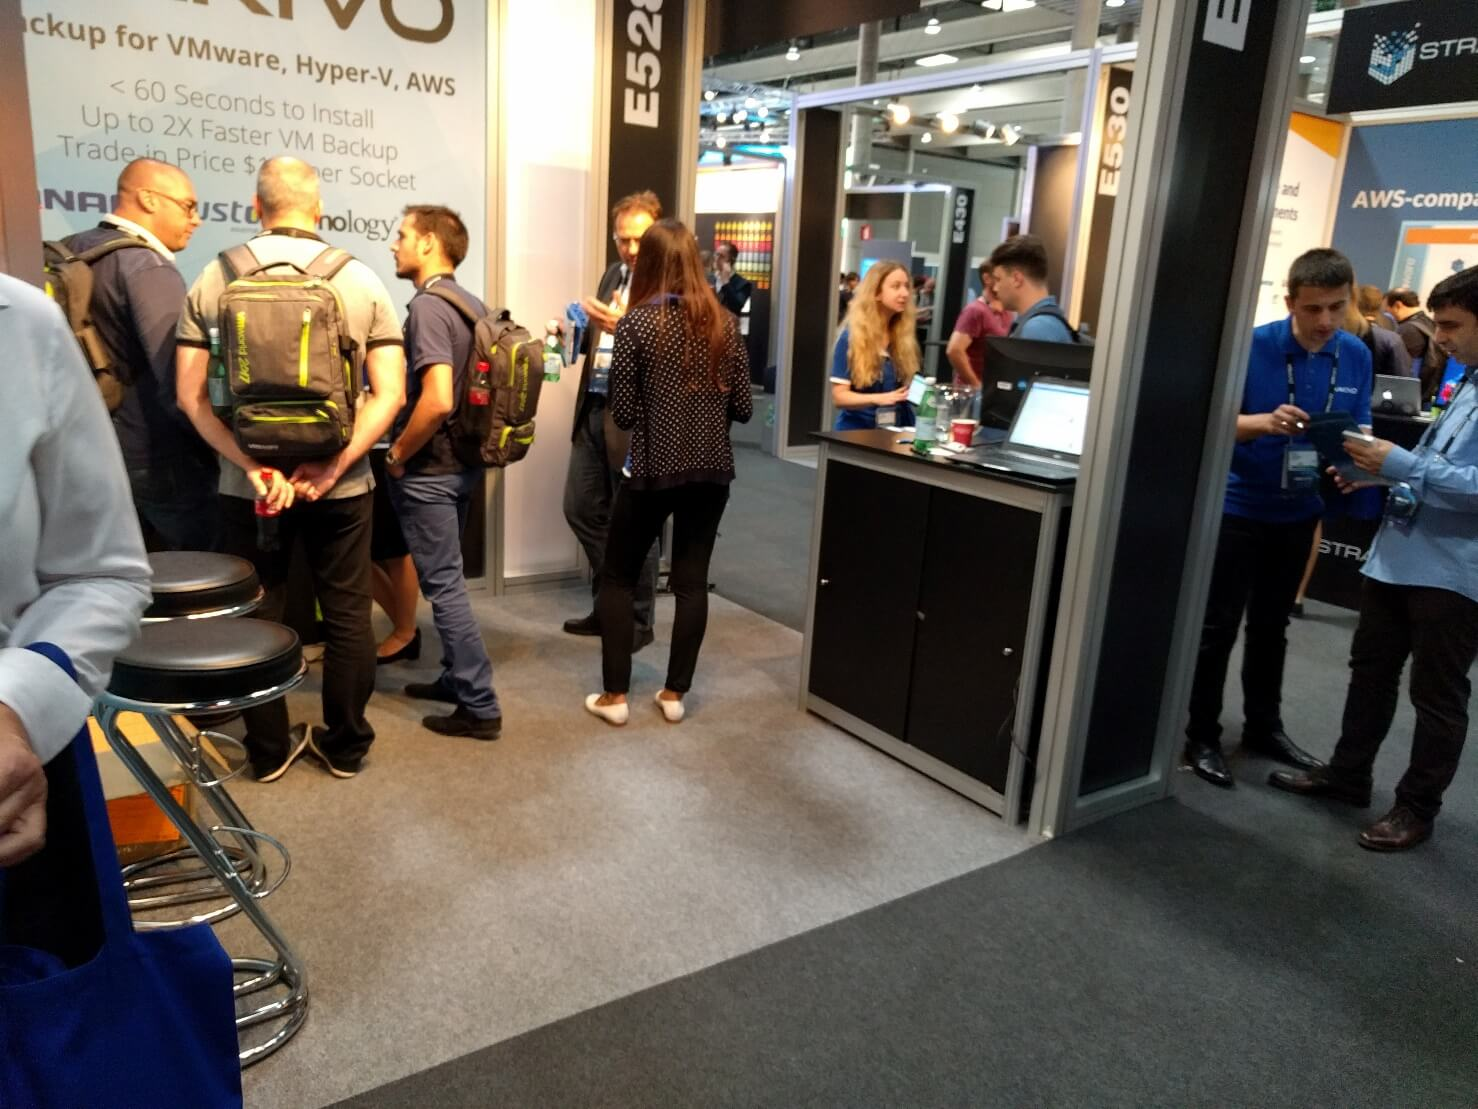 NAKIVO booth at VMworld Europe